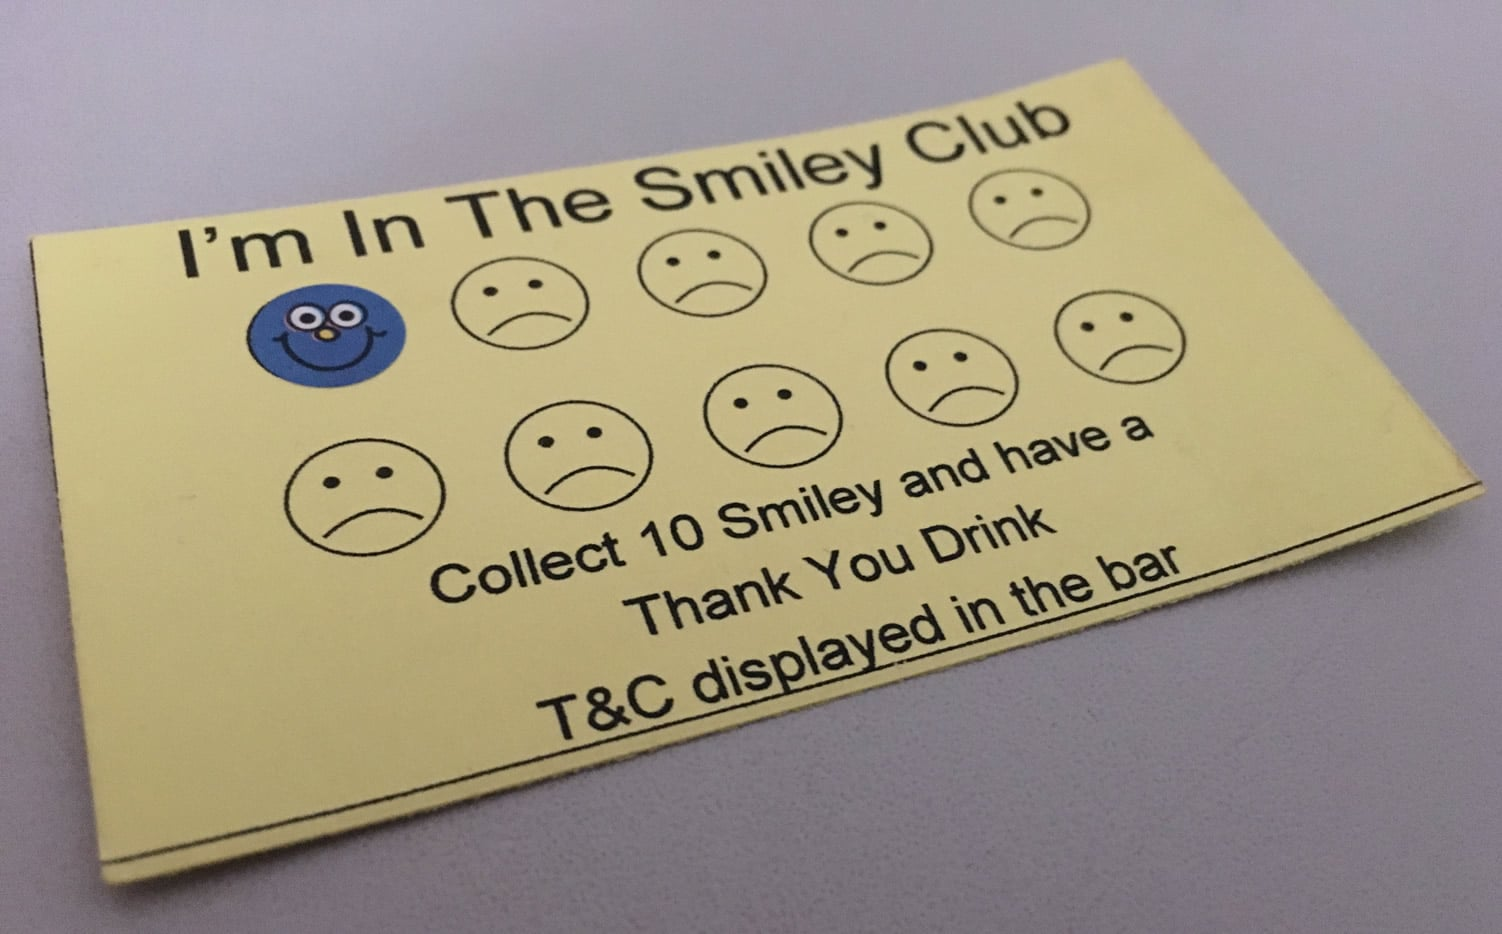 smiley club